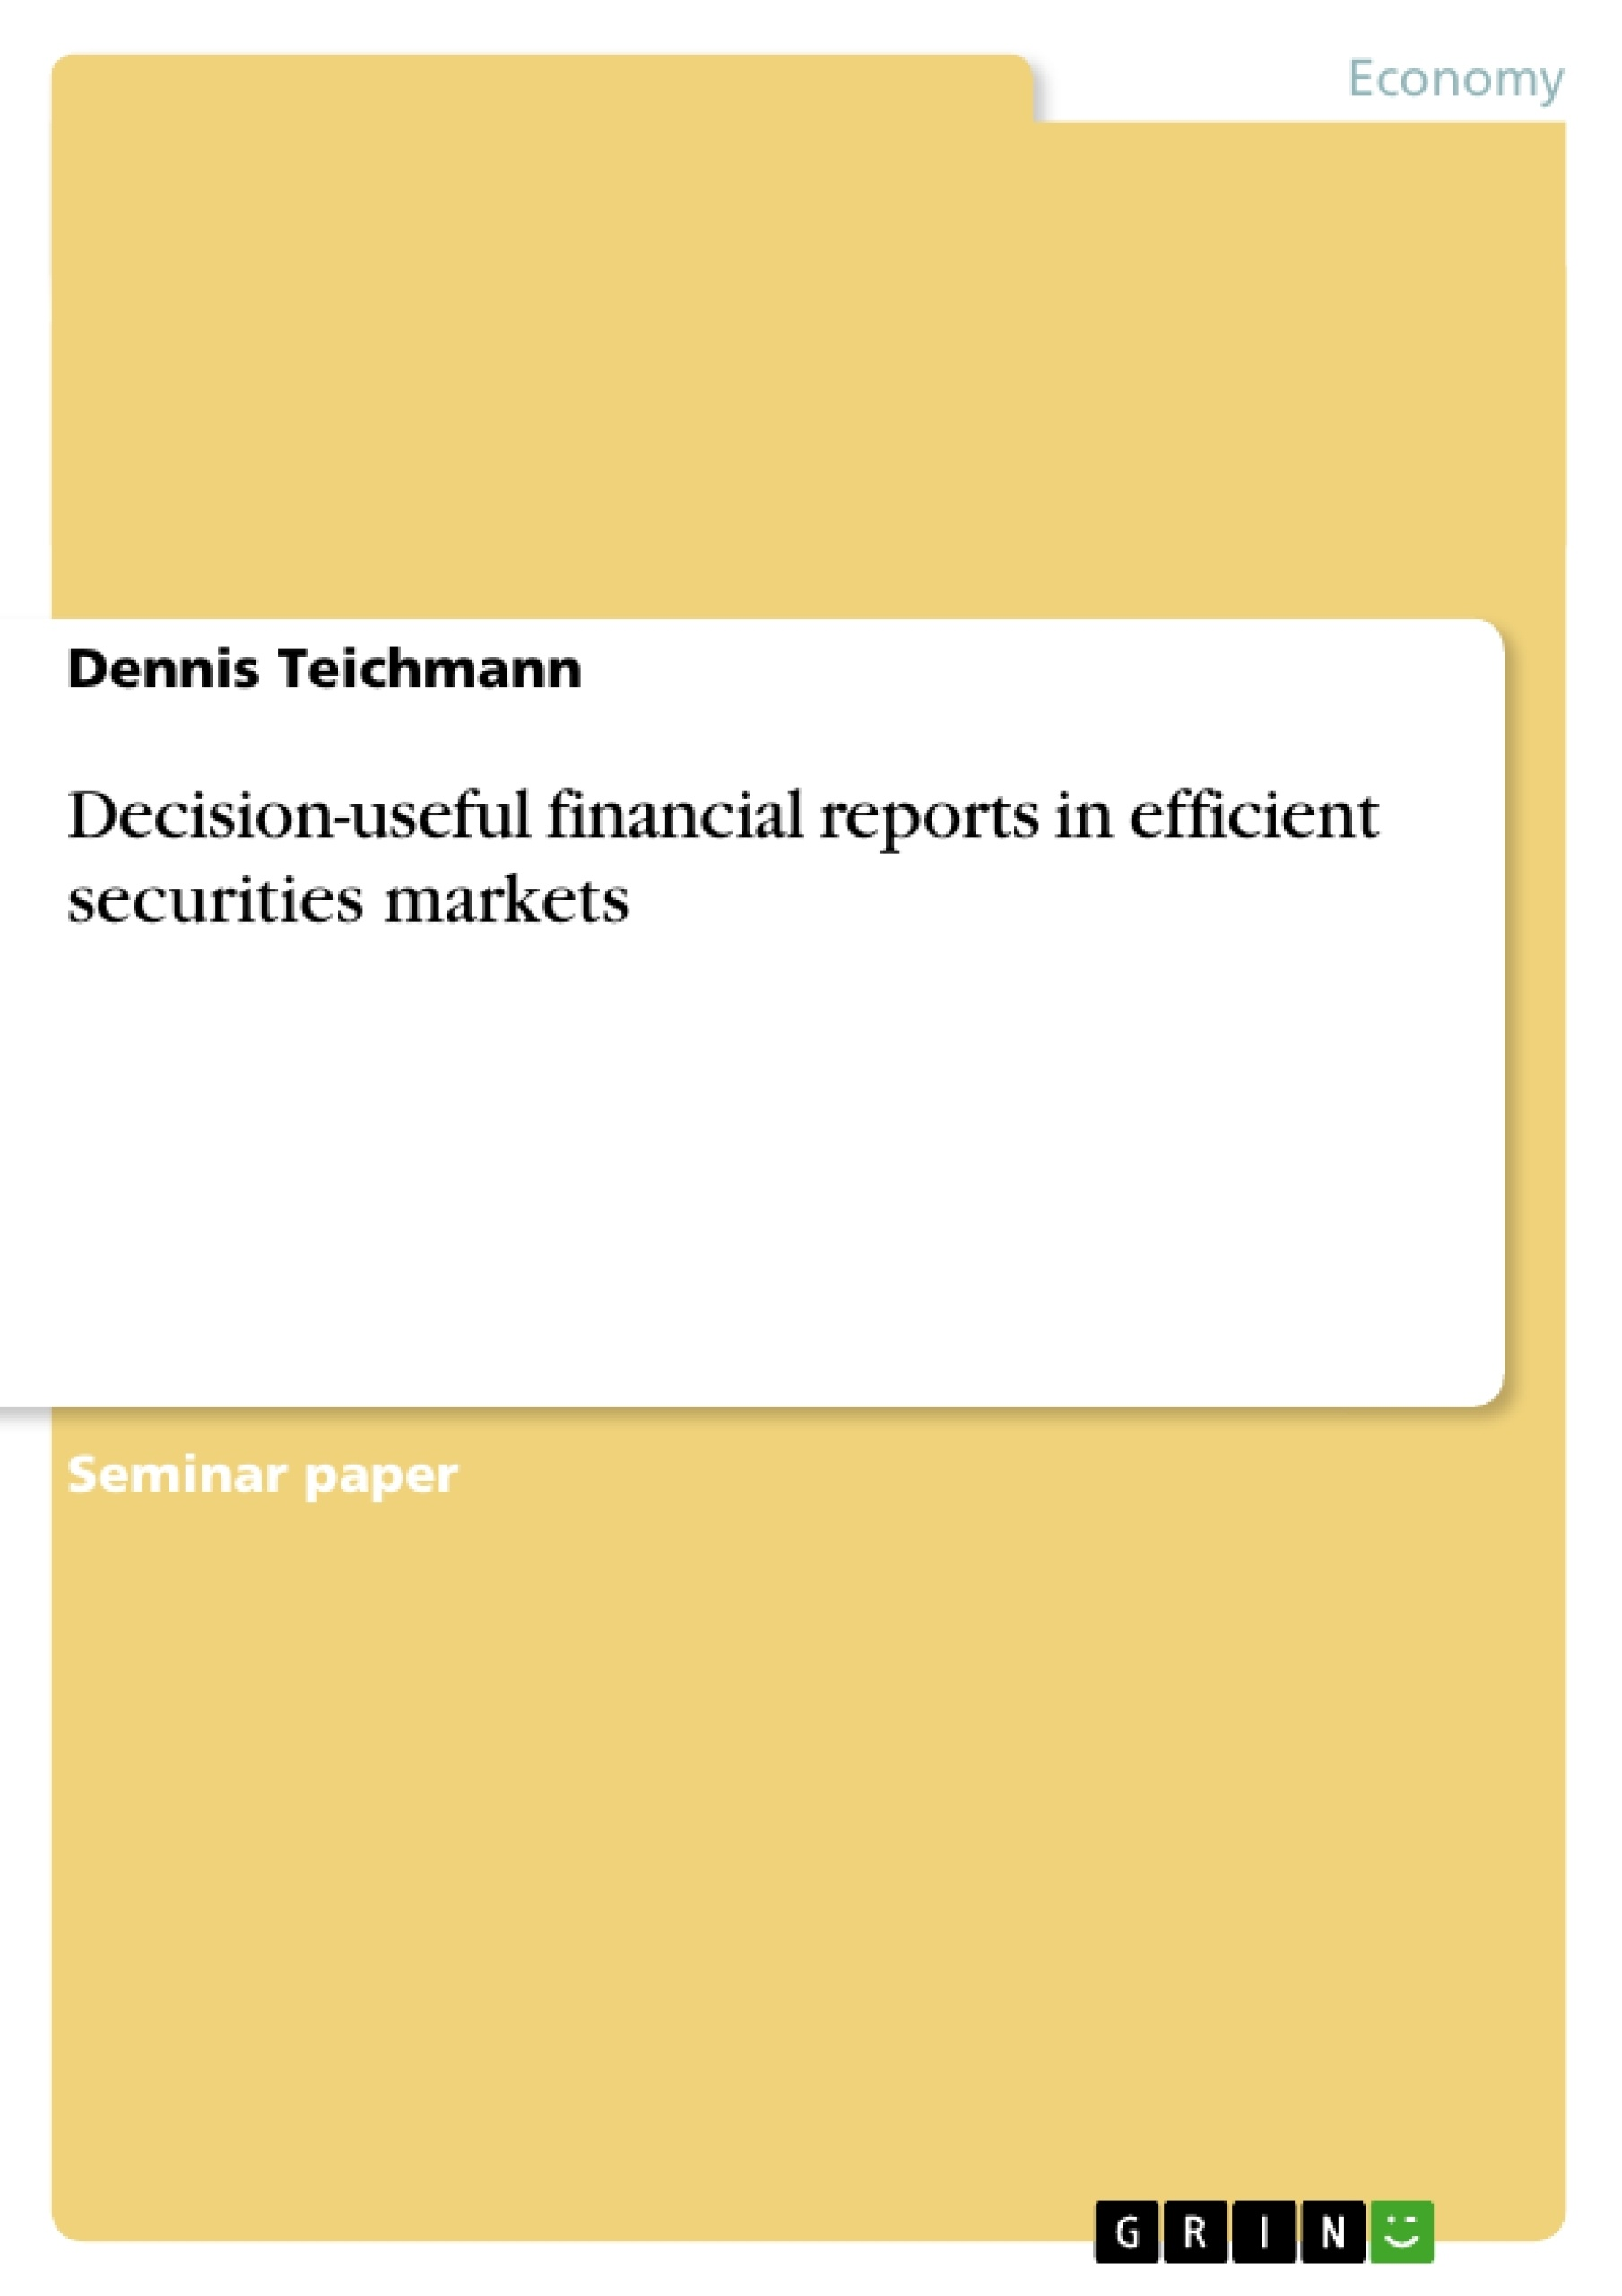 Title: Decision-useful financial reports in efficient securities markets